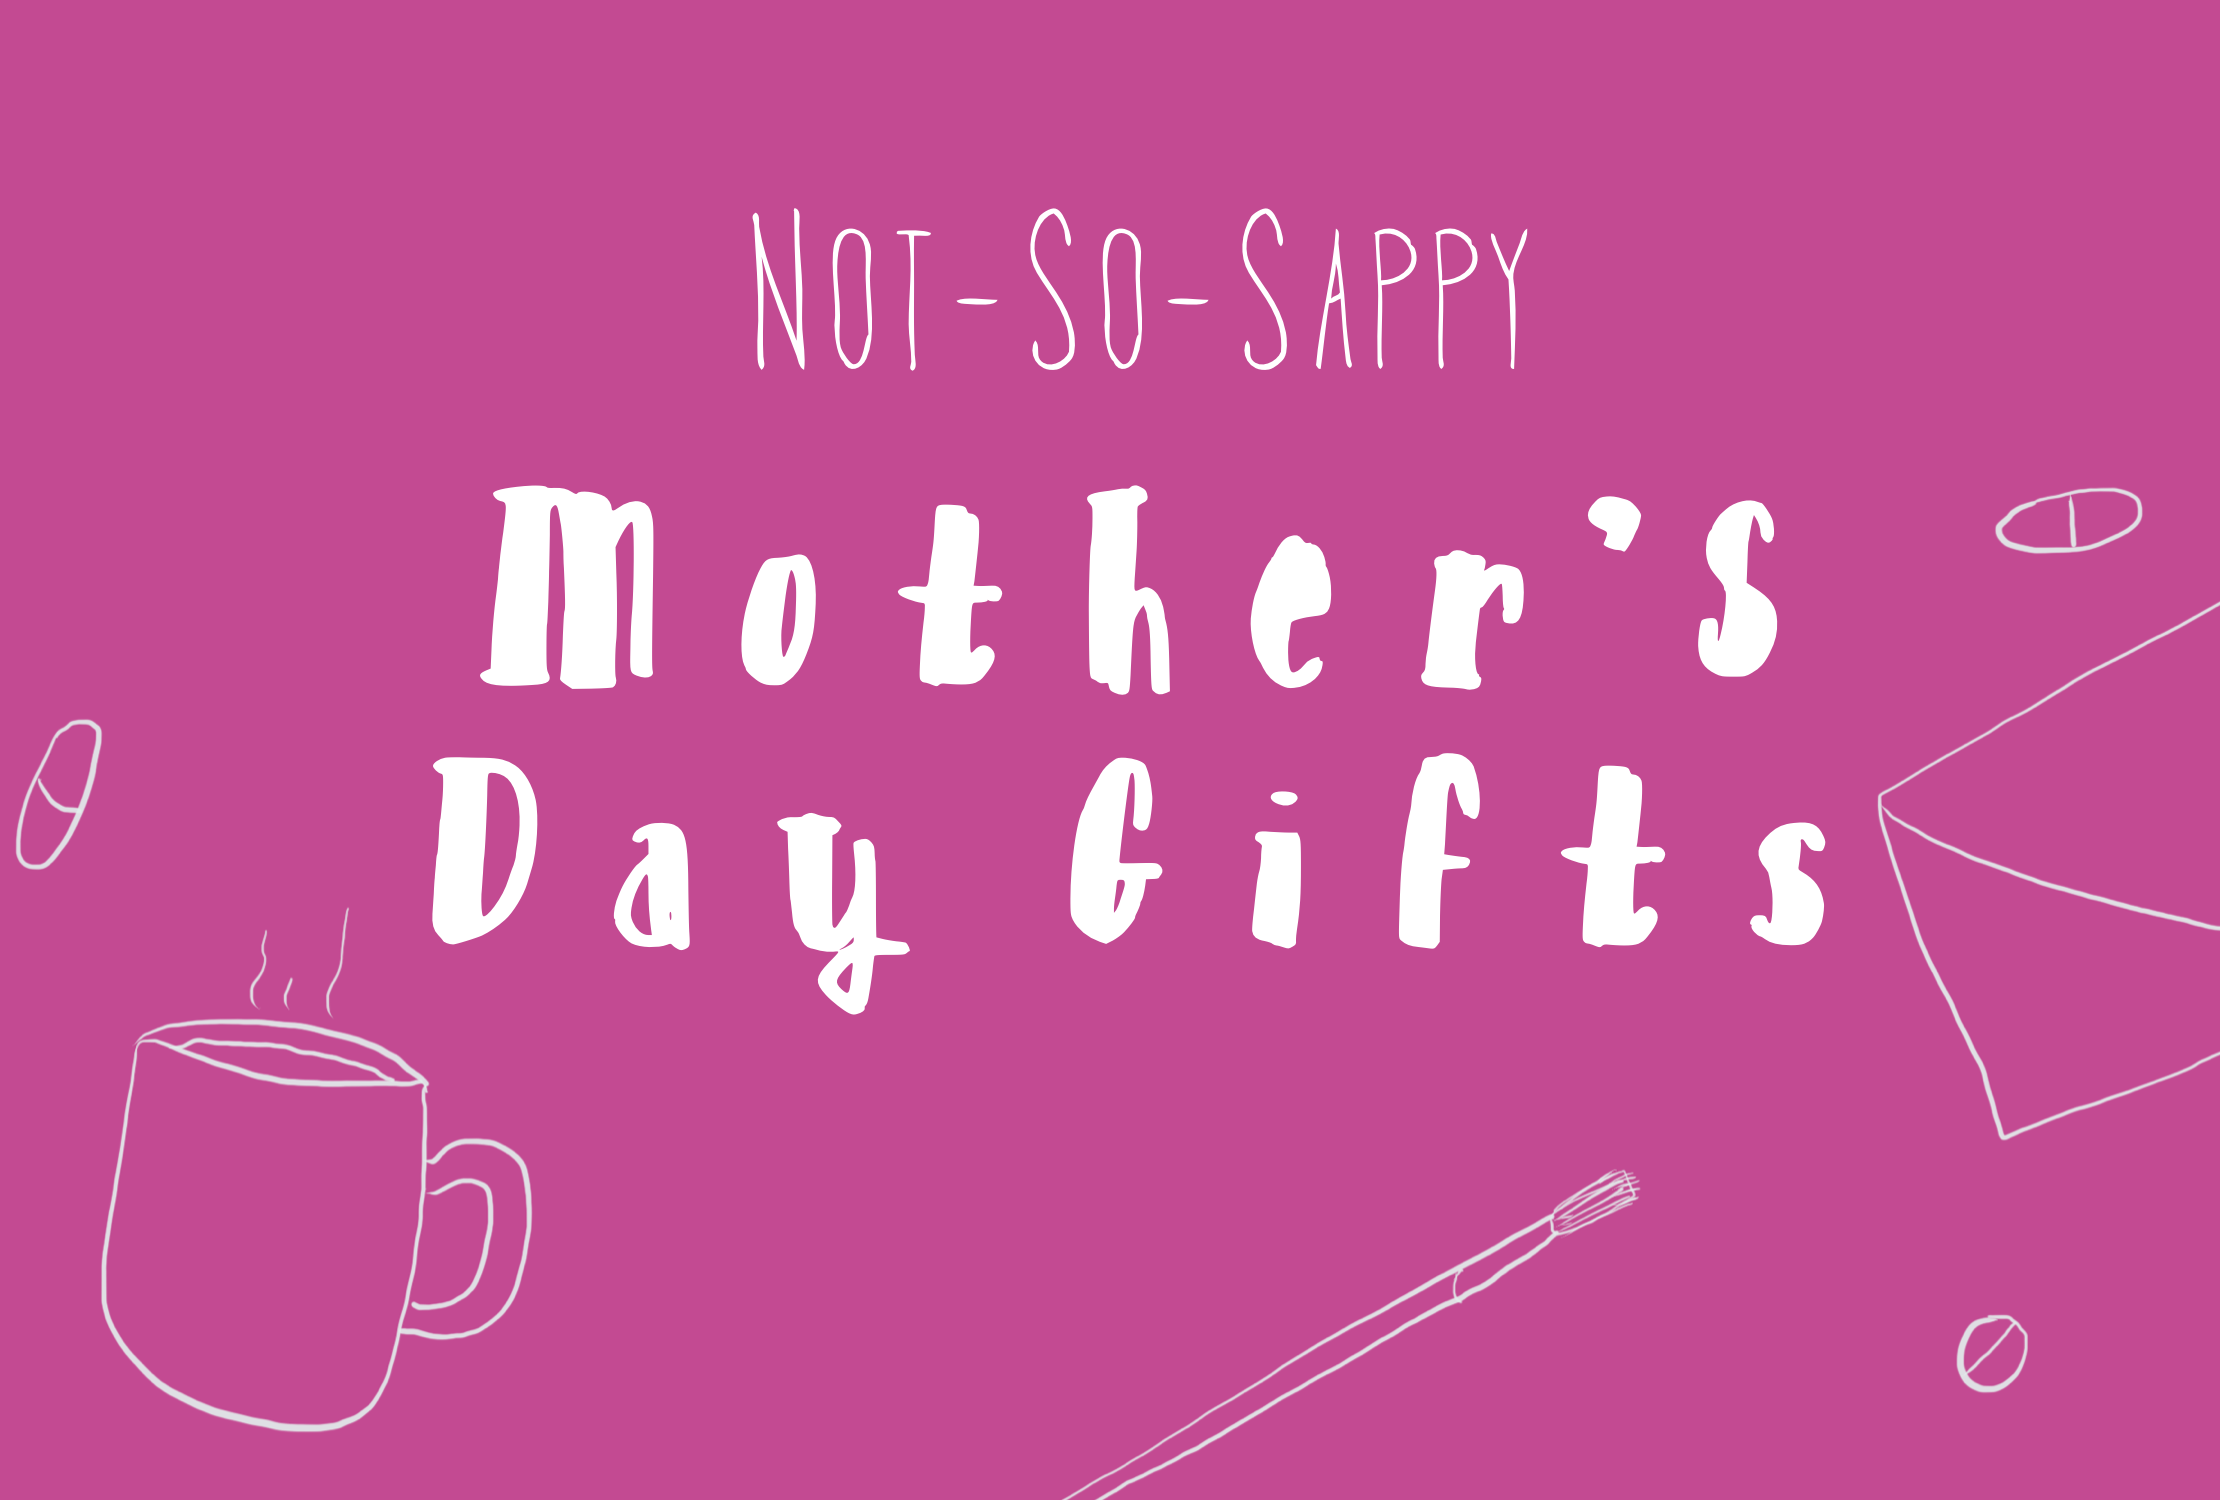 Not So Sappy Mother's Day Gifts.jpeg